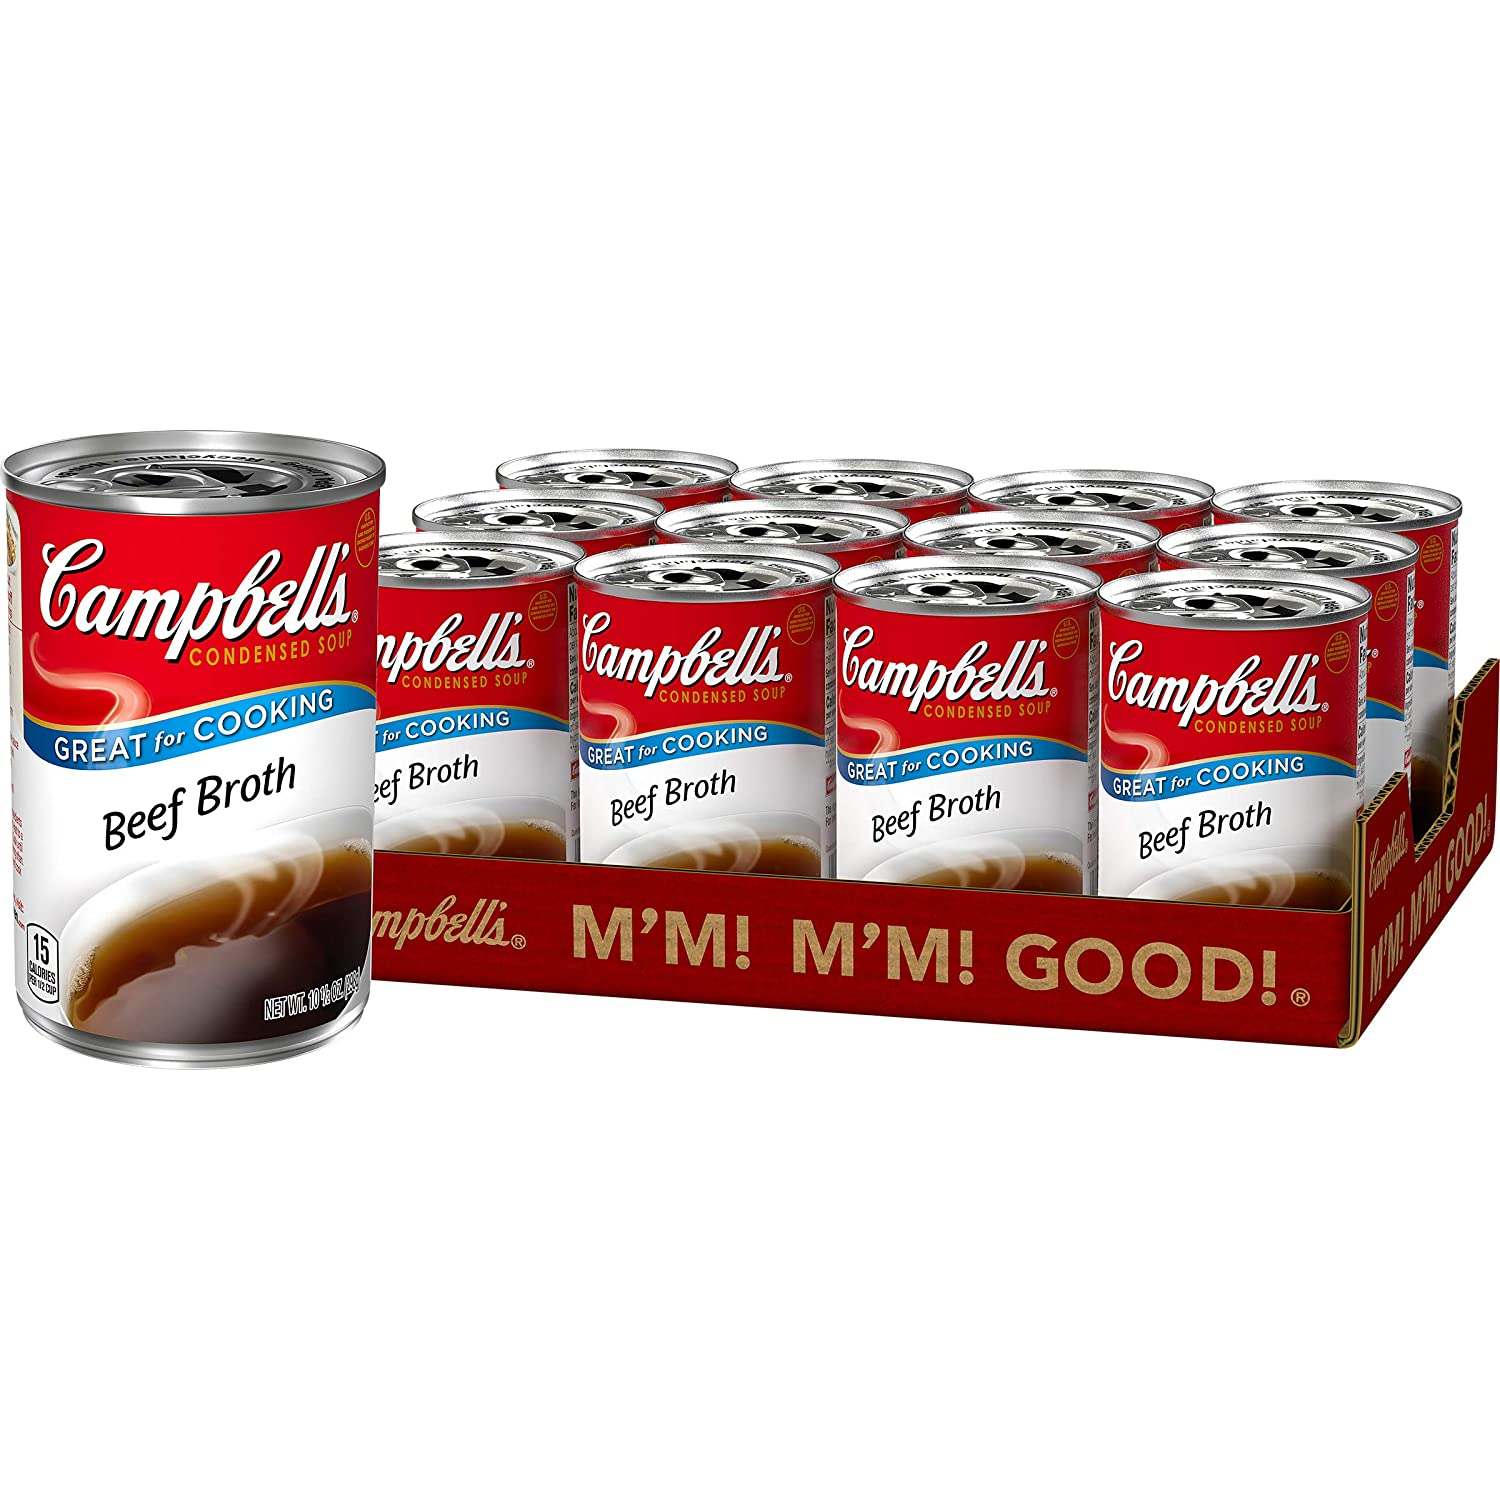 Campbell'sCondensed Beef Broth, 10.5 oz. Can (Pack of 12) (Packaging May Vary)